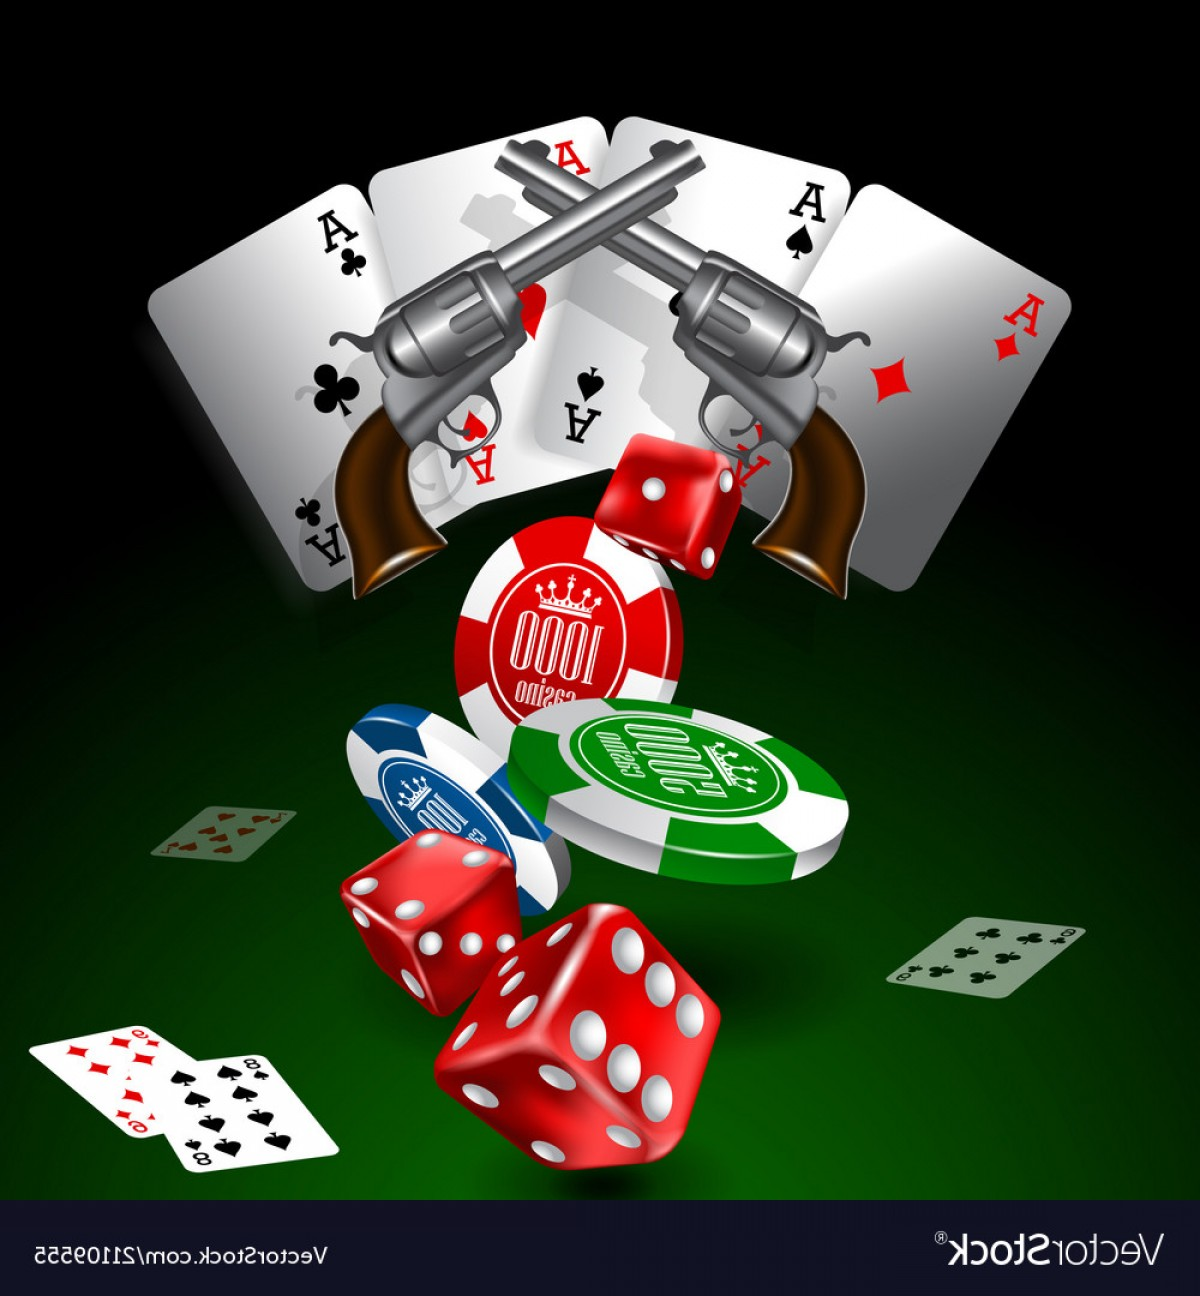 Editable Vector Poker Chips: Western Casino Theme Backgroun With Cards Chip Vector